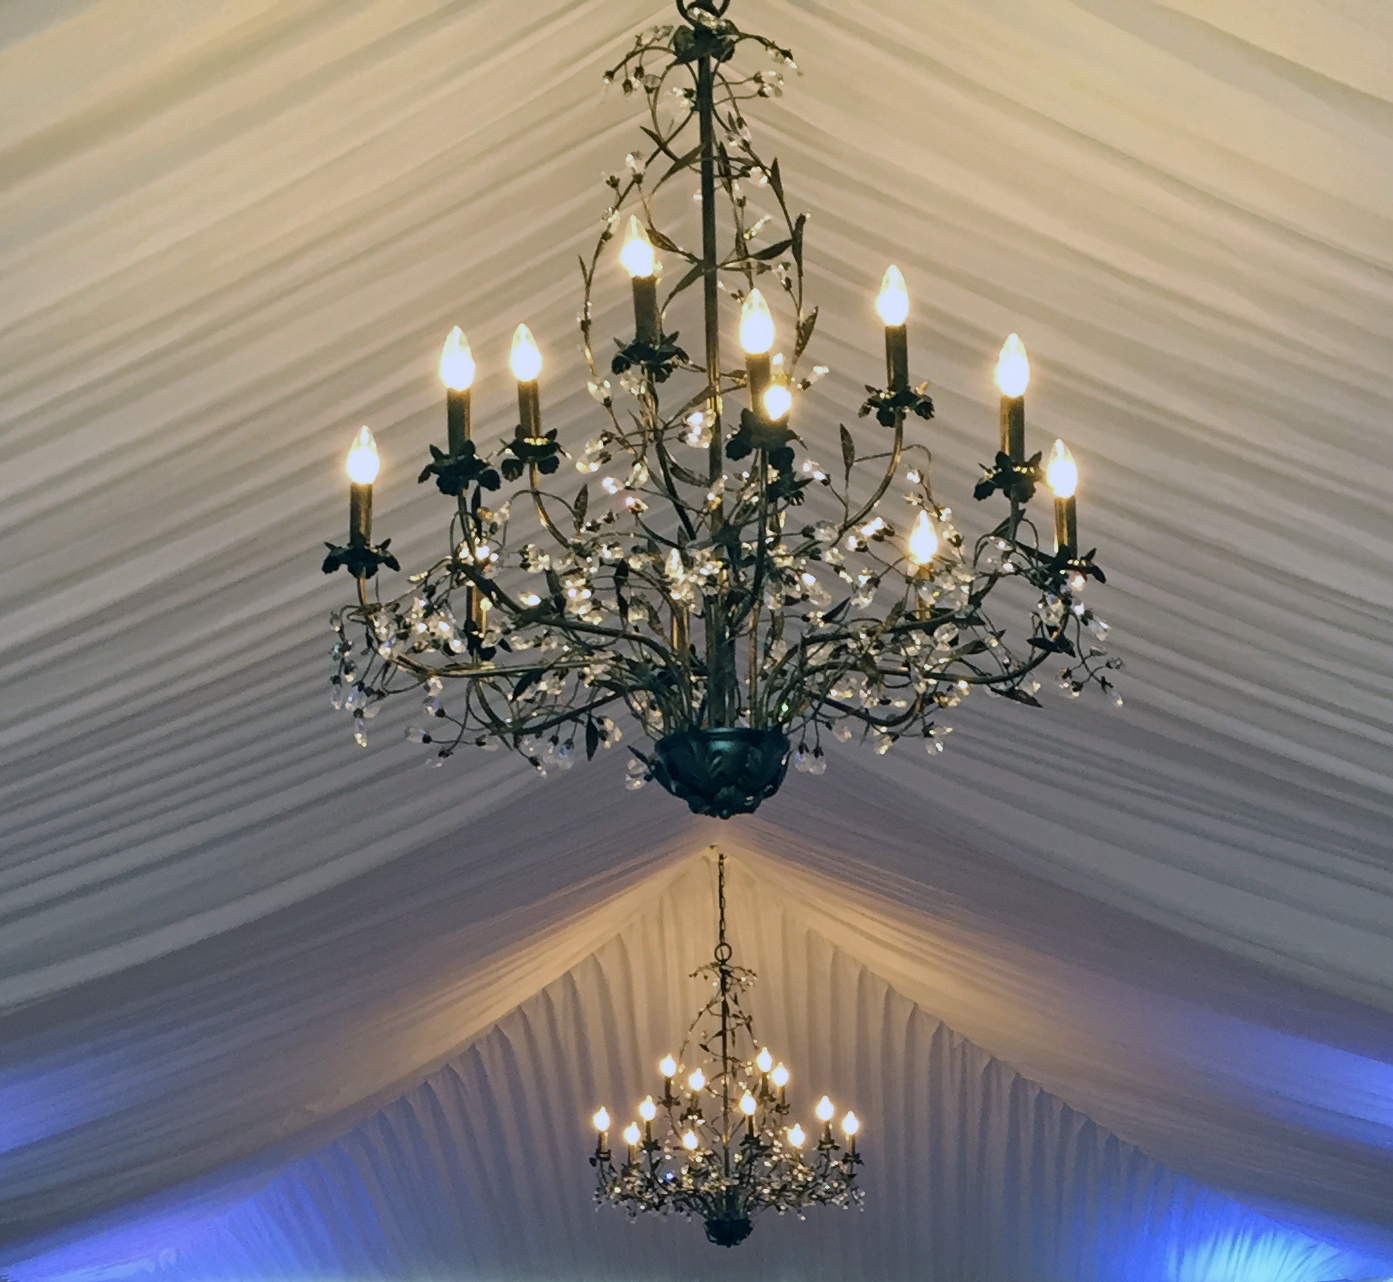 Chandelier rentals party tent rentals in rochester ny buffalo ny all season hank parker tent rental products aloadofball Gallery